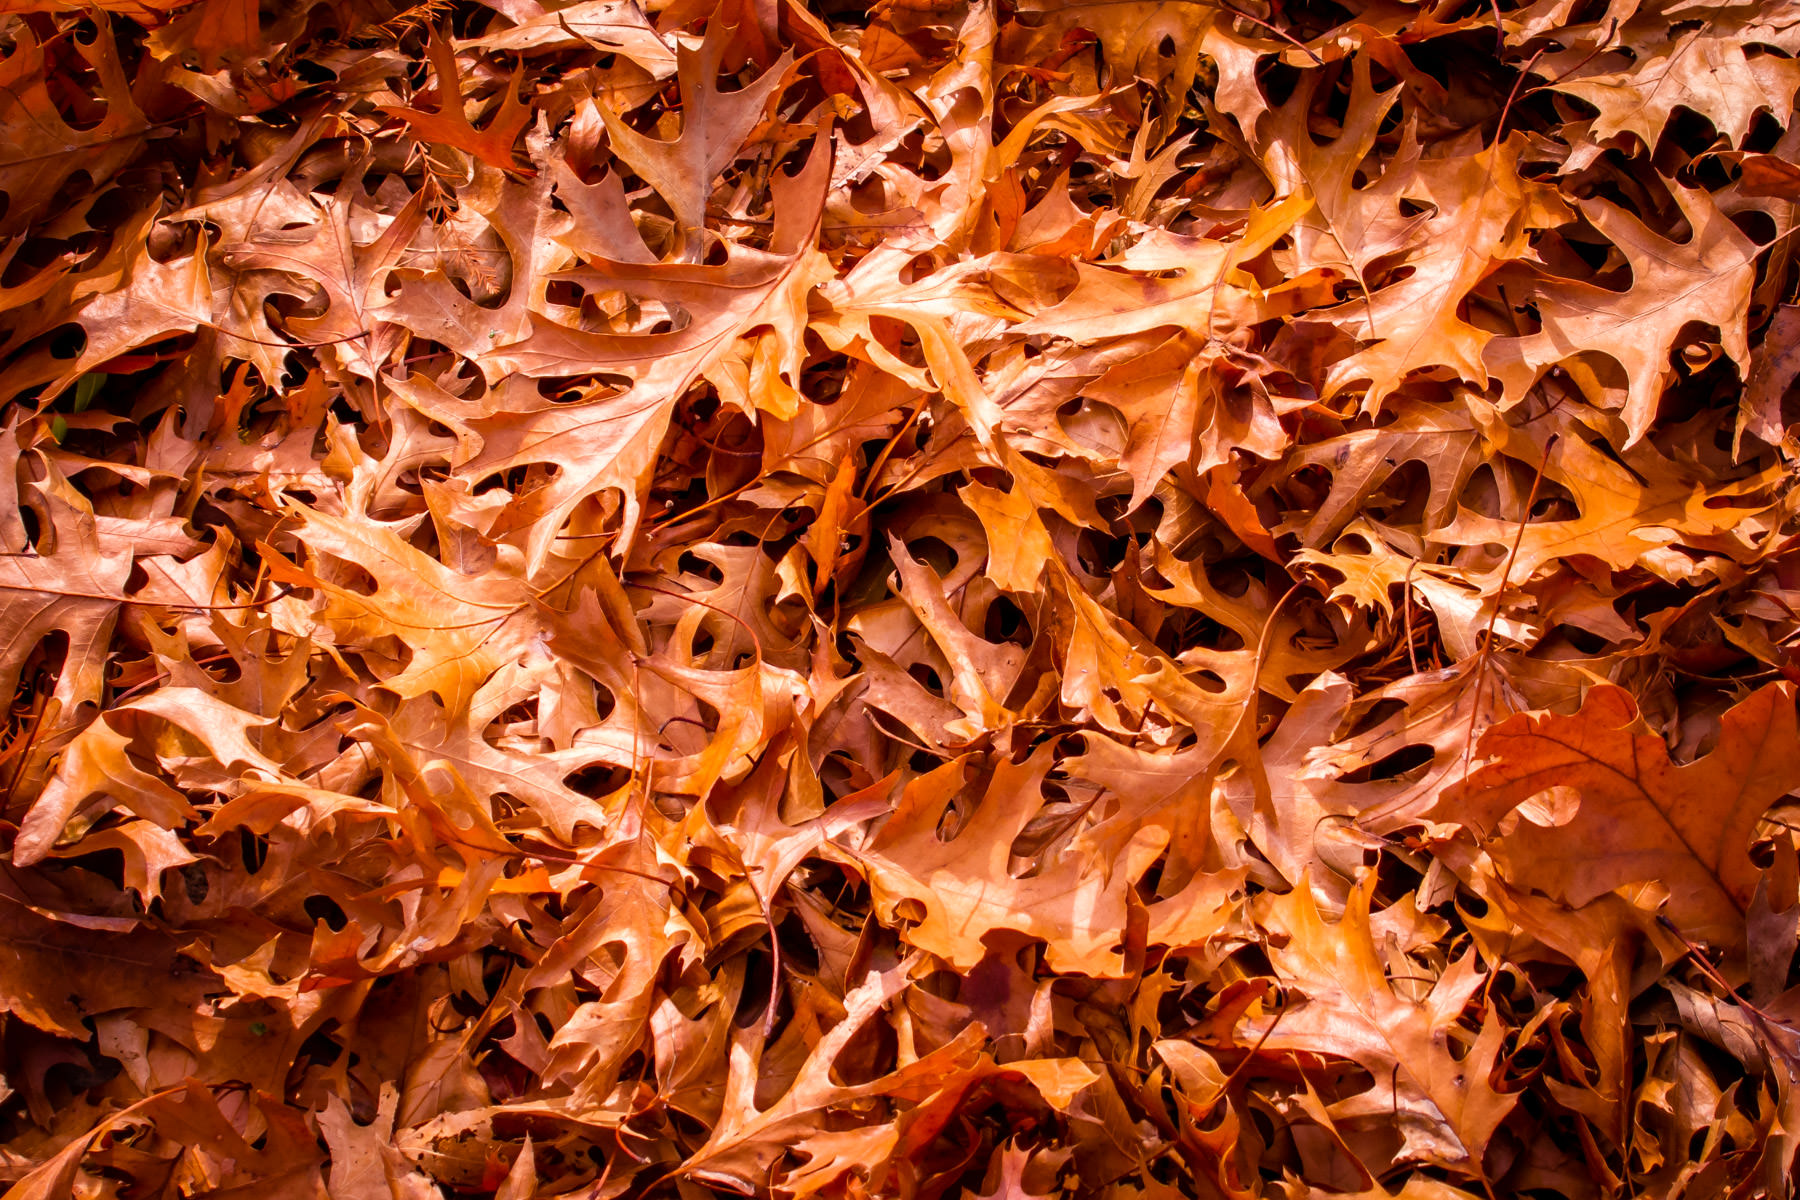 Autumn leaves, swept into a pile by the wind, spotted in Irving, Texas.